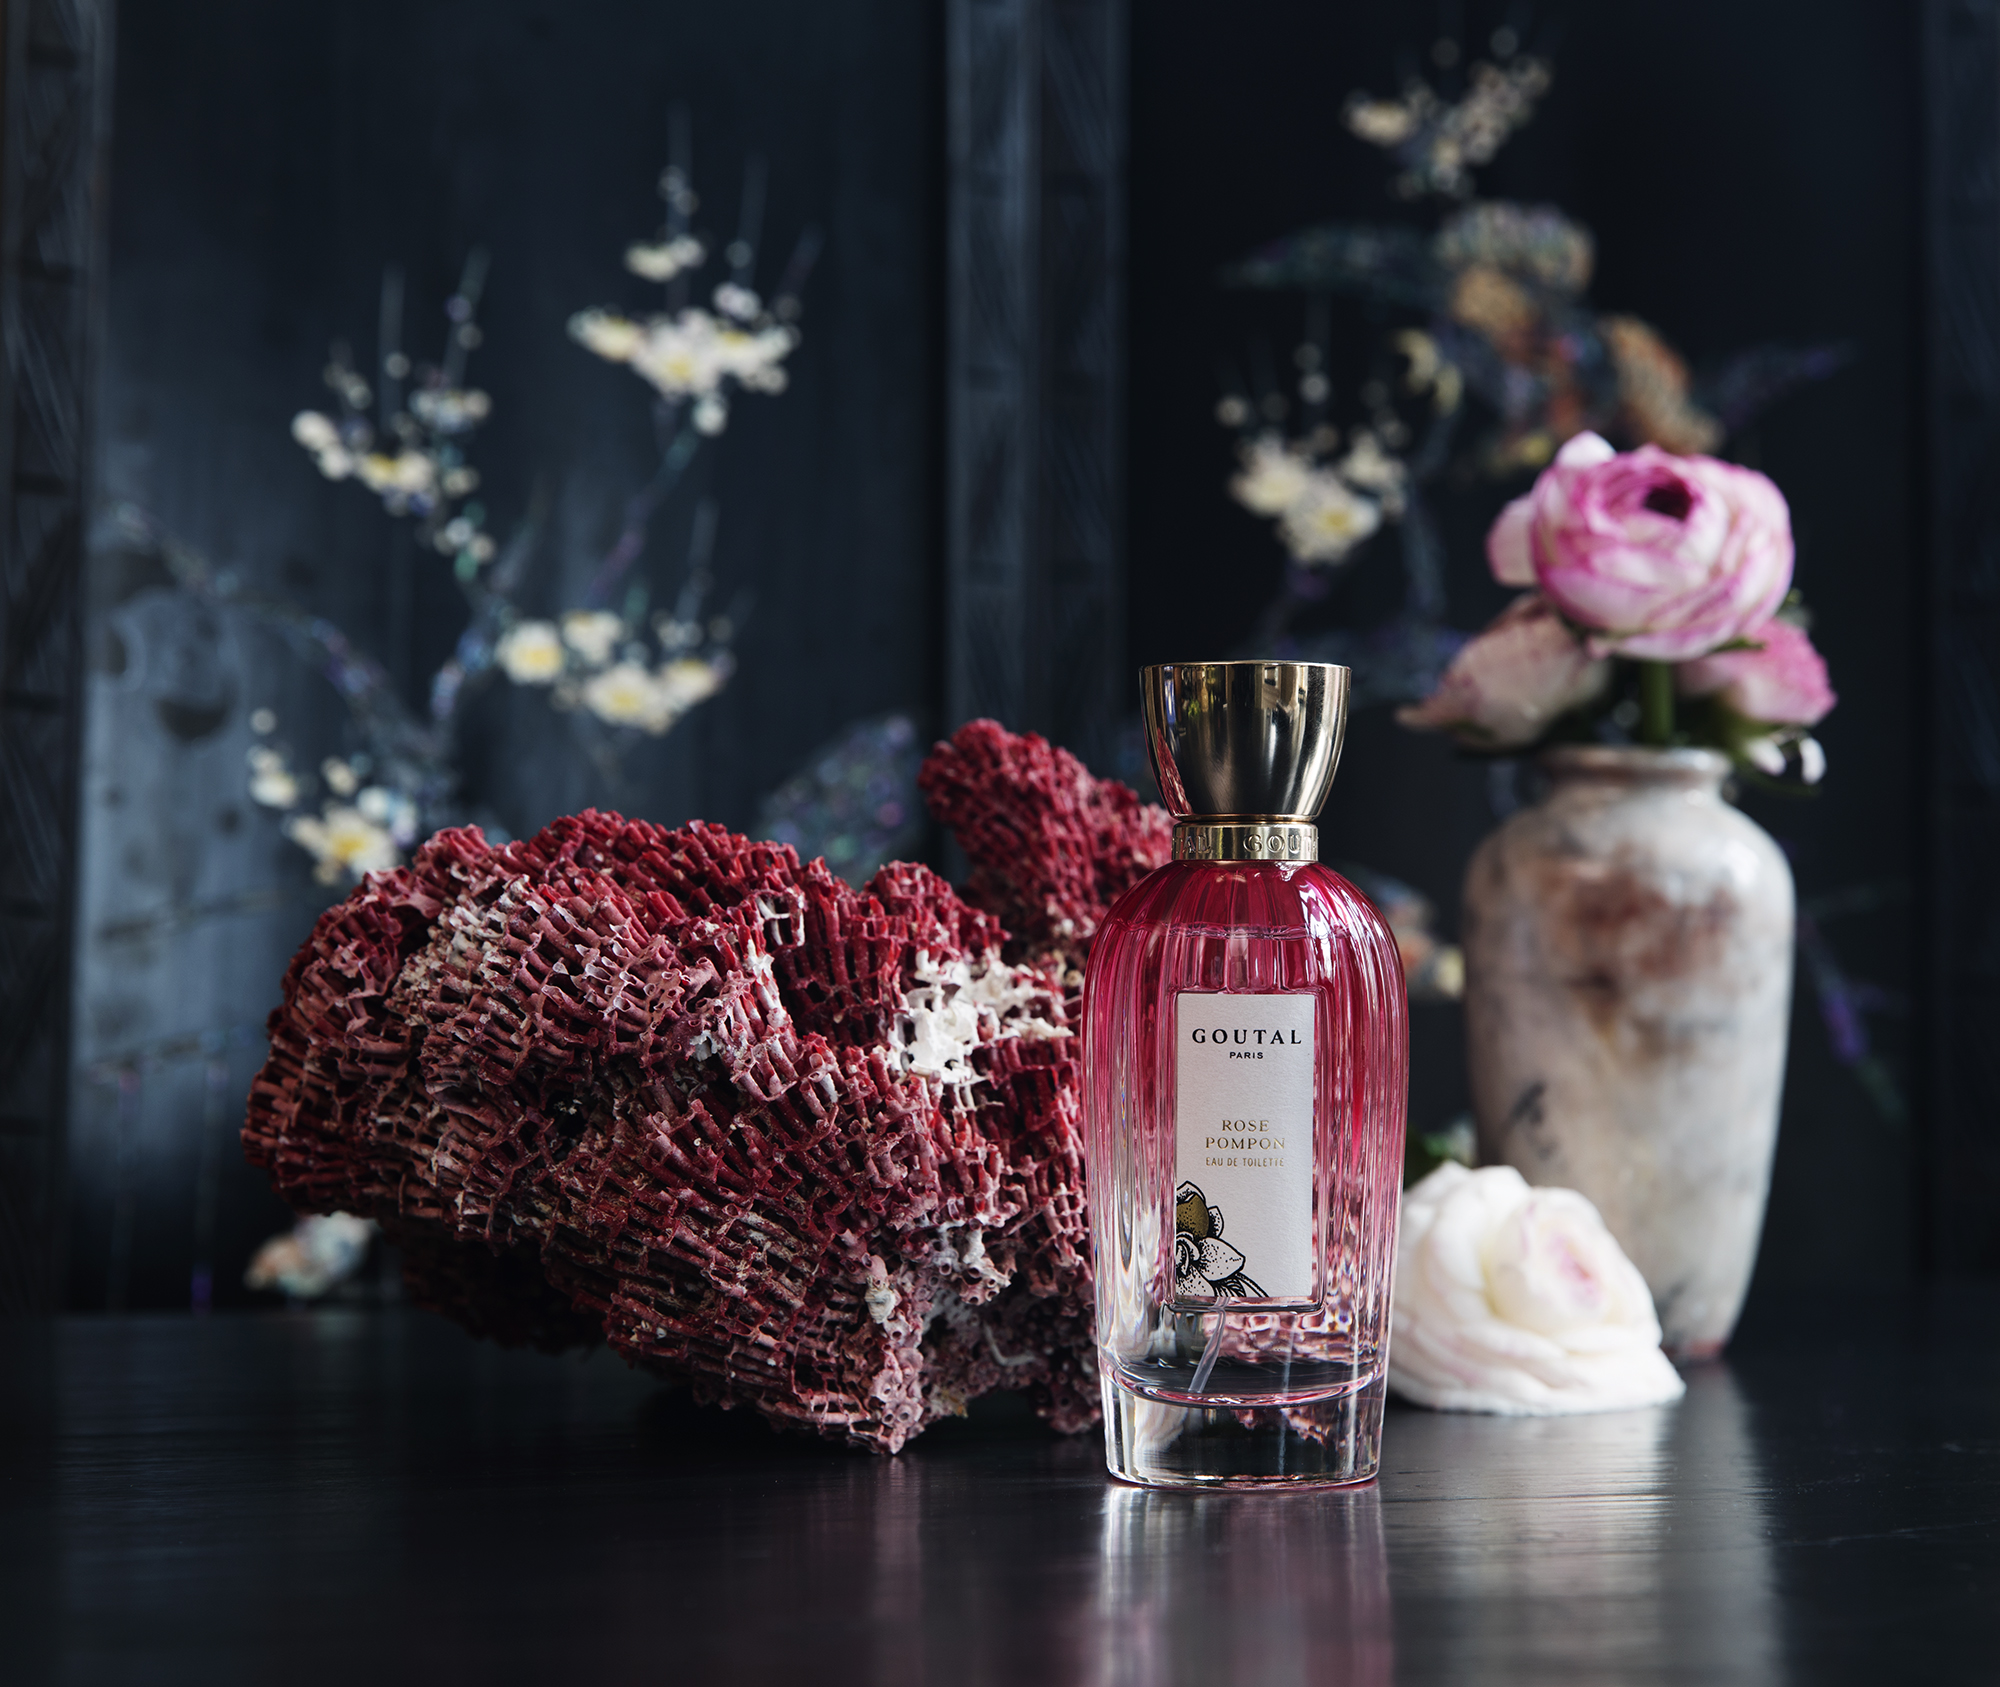 Rose Pompon from Goutal Paris / Heaven Scent